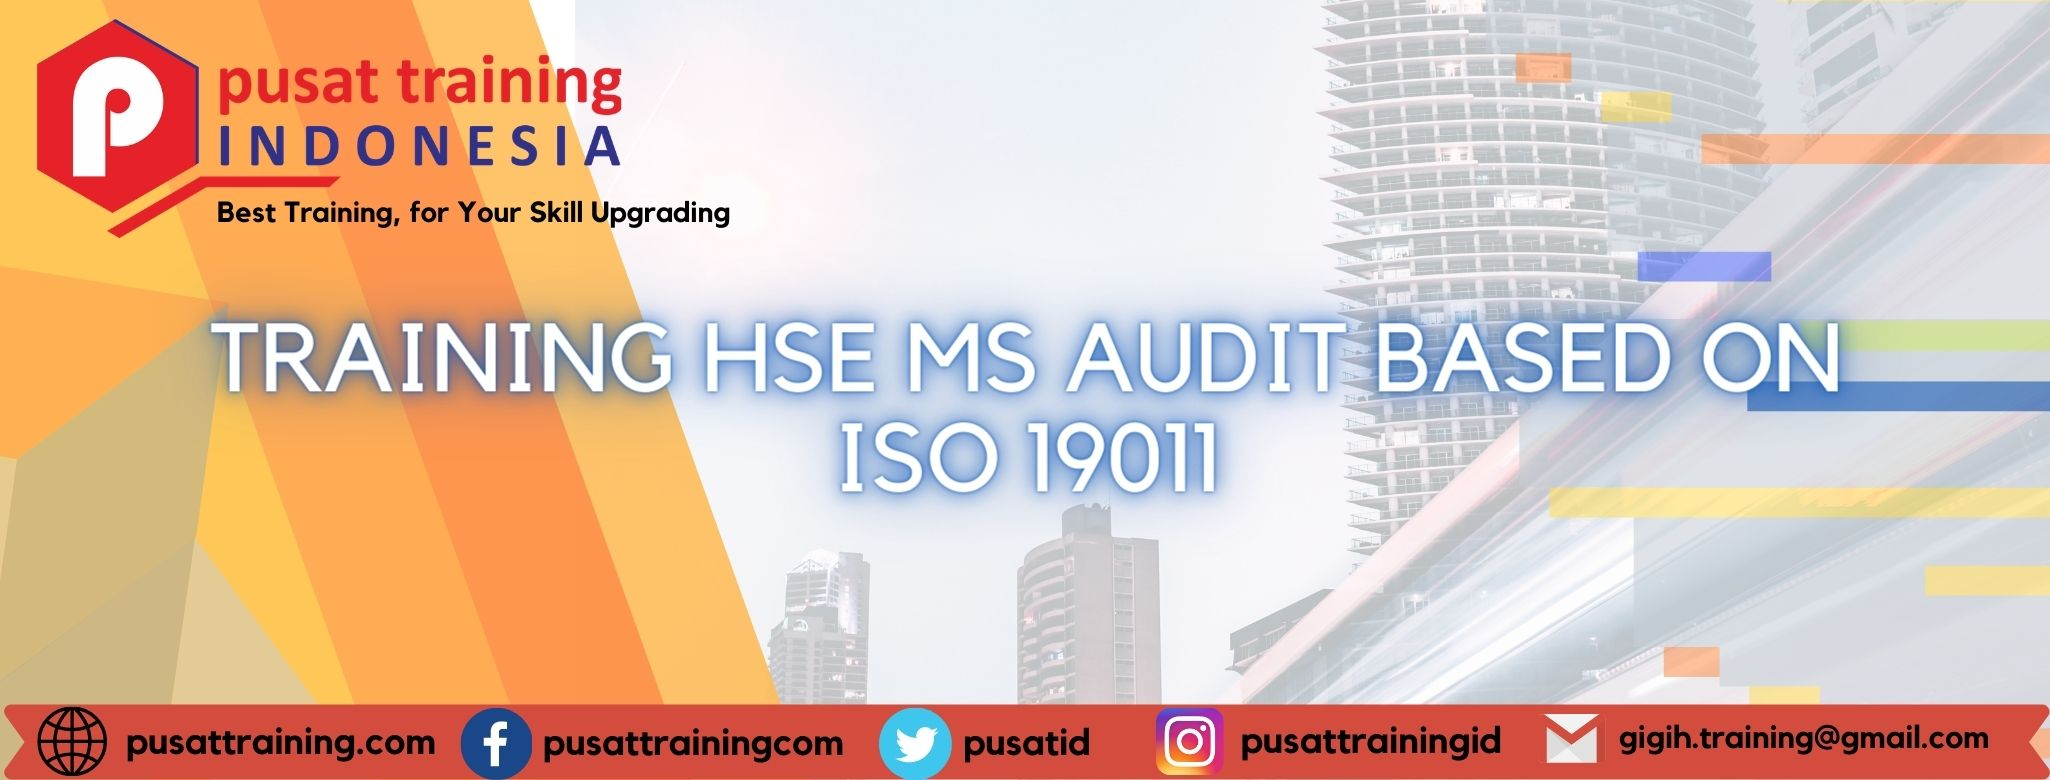 training-hse-ms-based-on-iso-19011